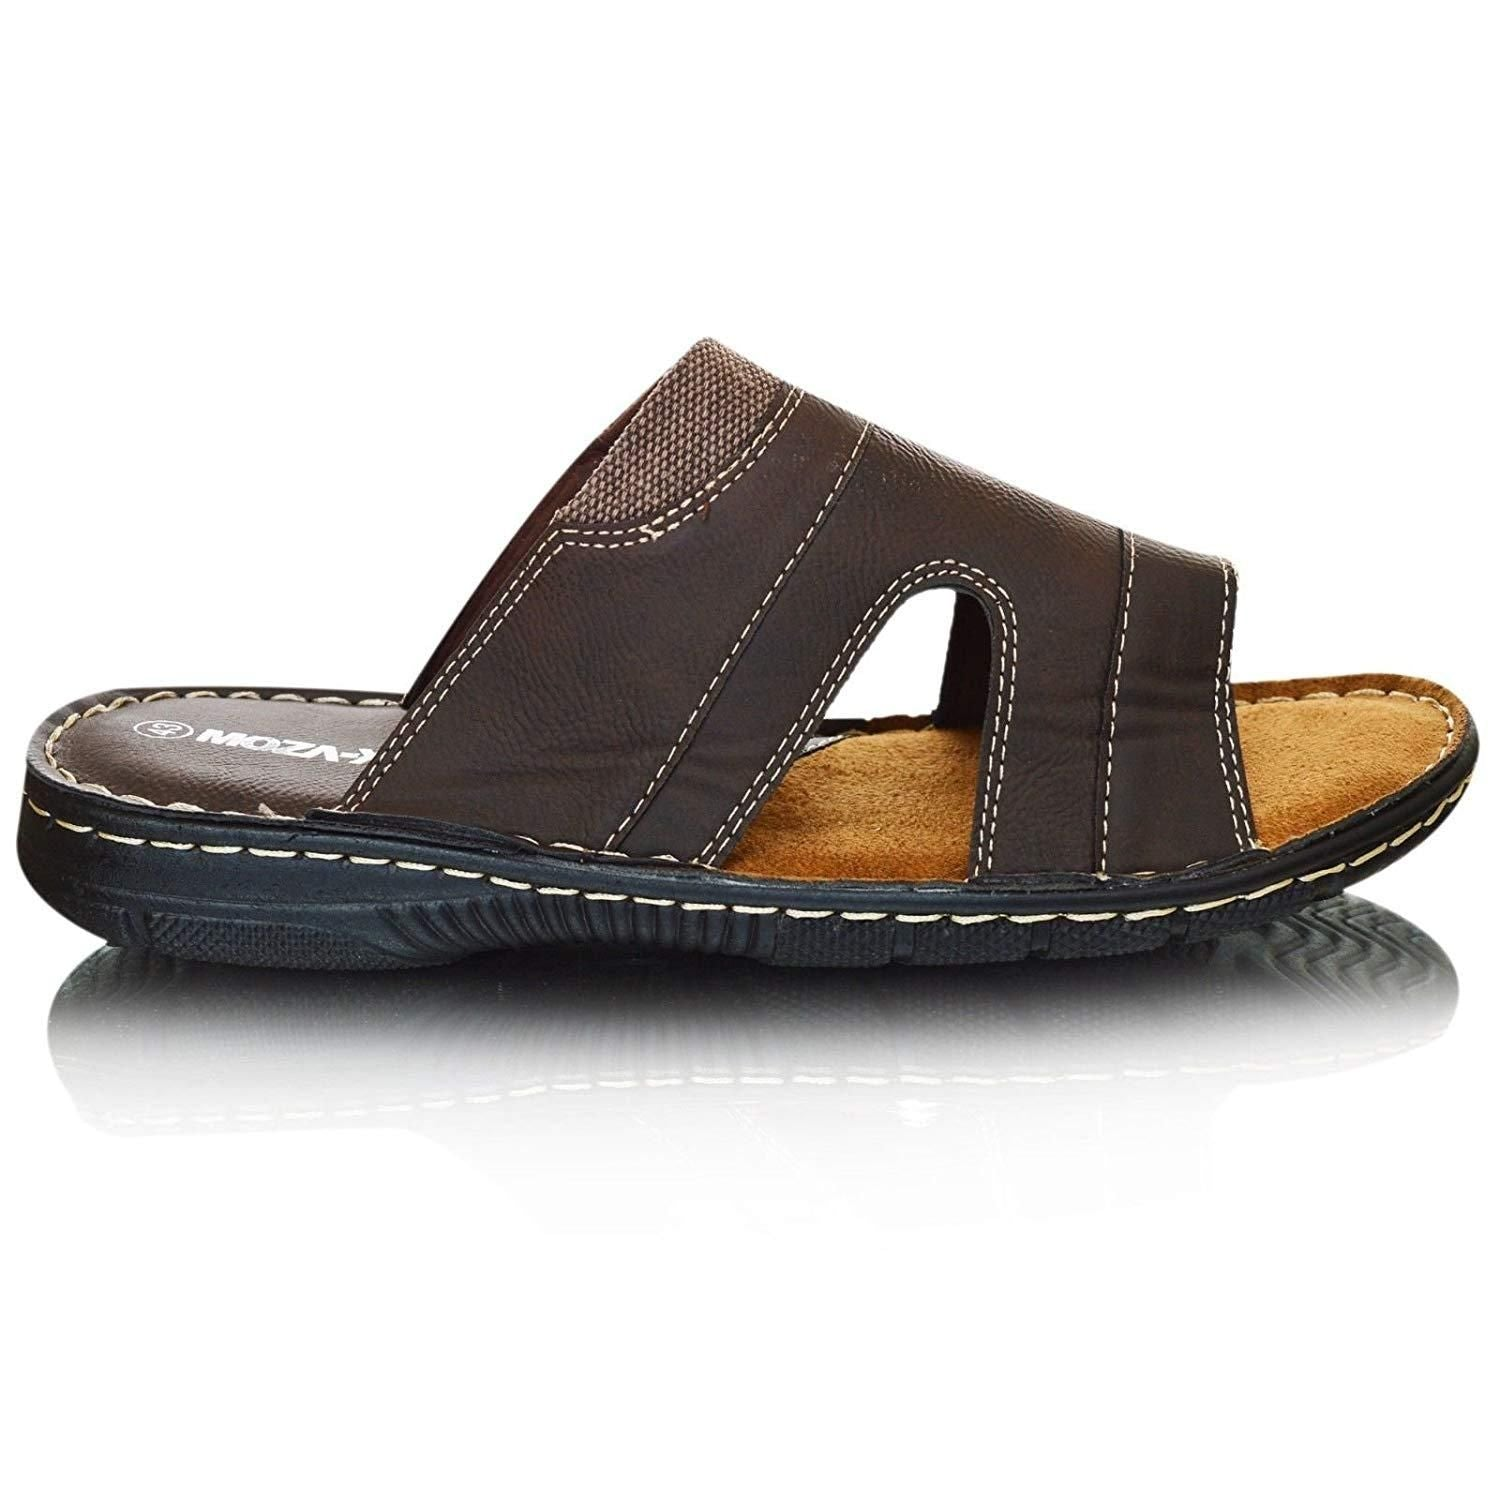 547f774b449e Mens Leather Comfort Mules Sandals Flip Flops Cushioned